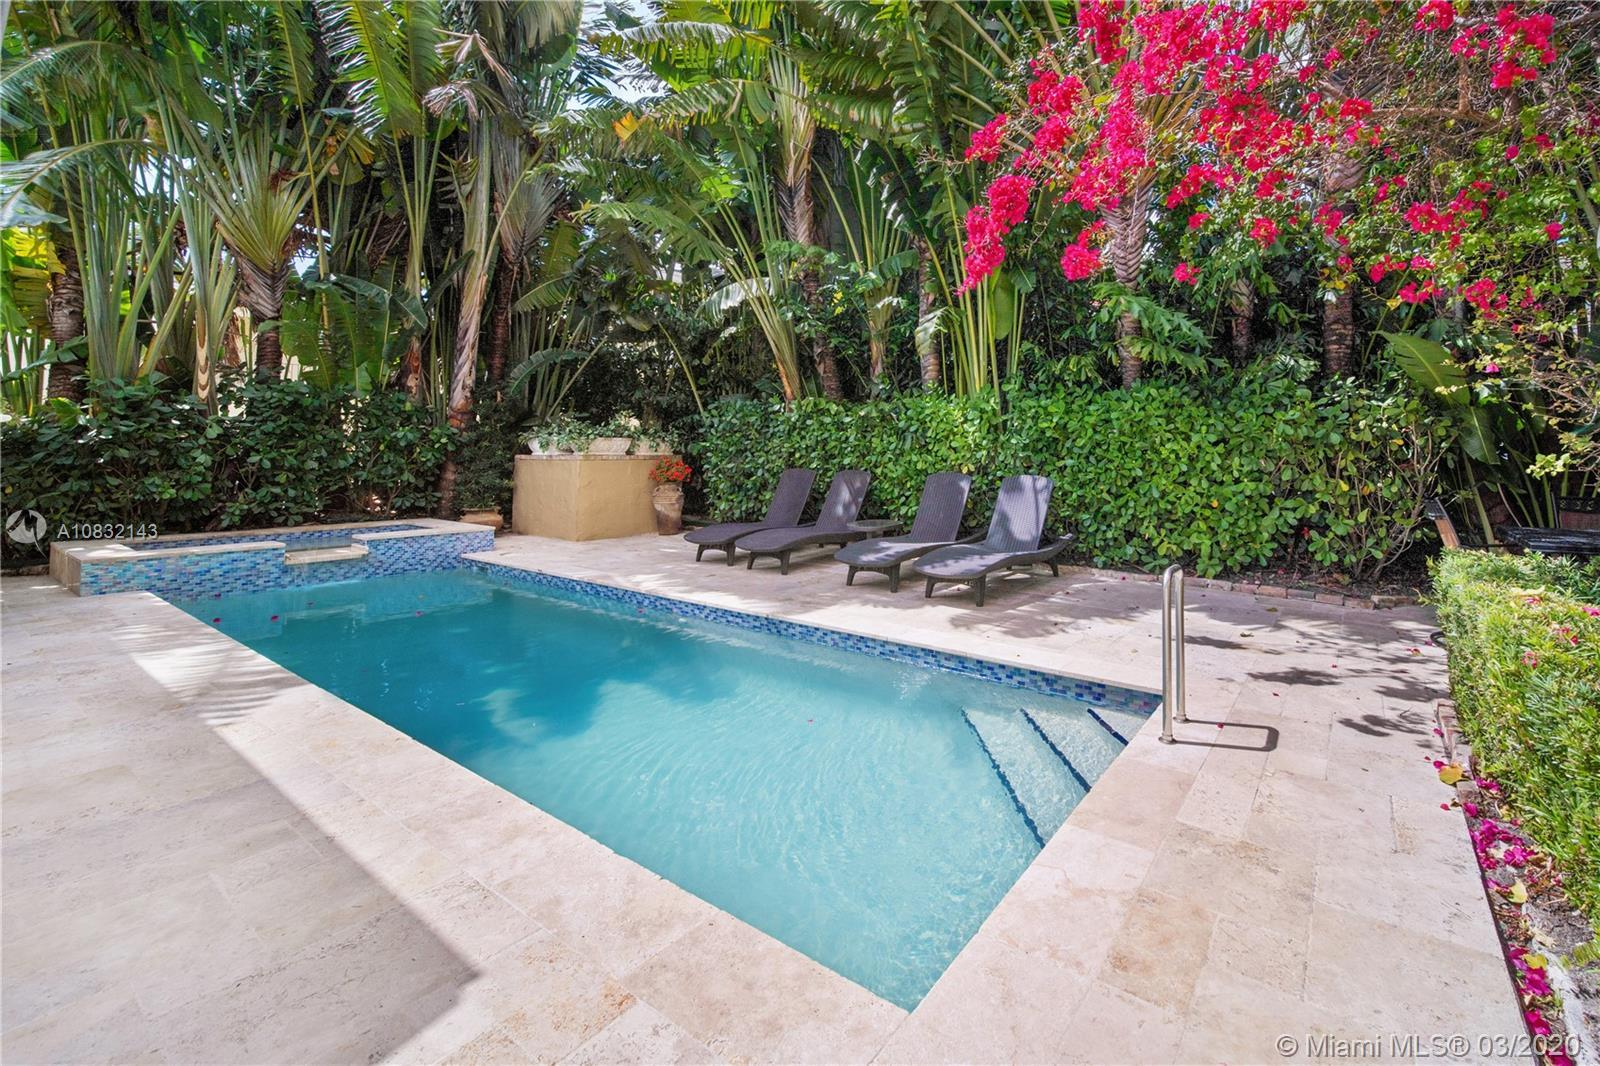 Once in a while an opportunity like this presents itself! Picture perfect Coral Gables home with ren